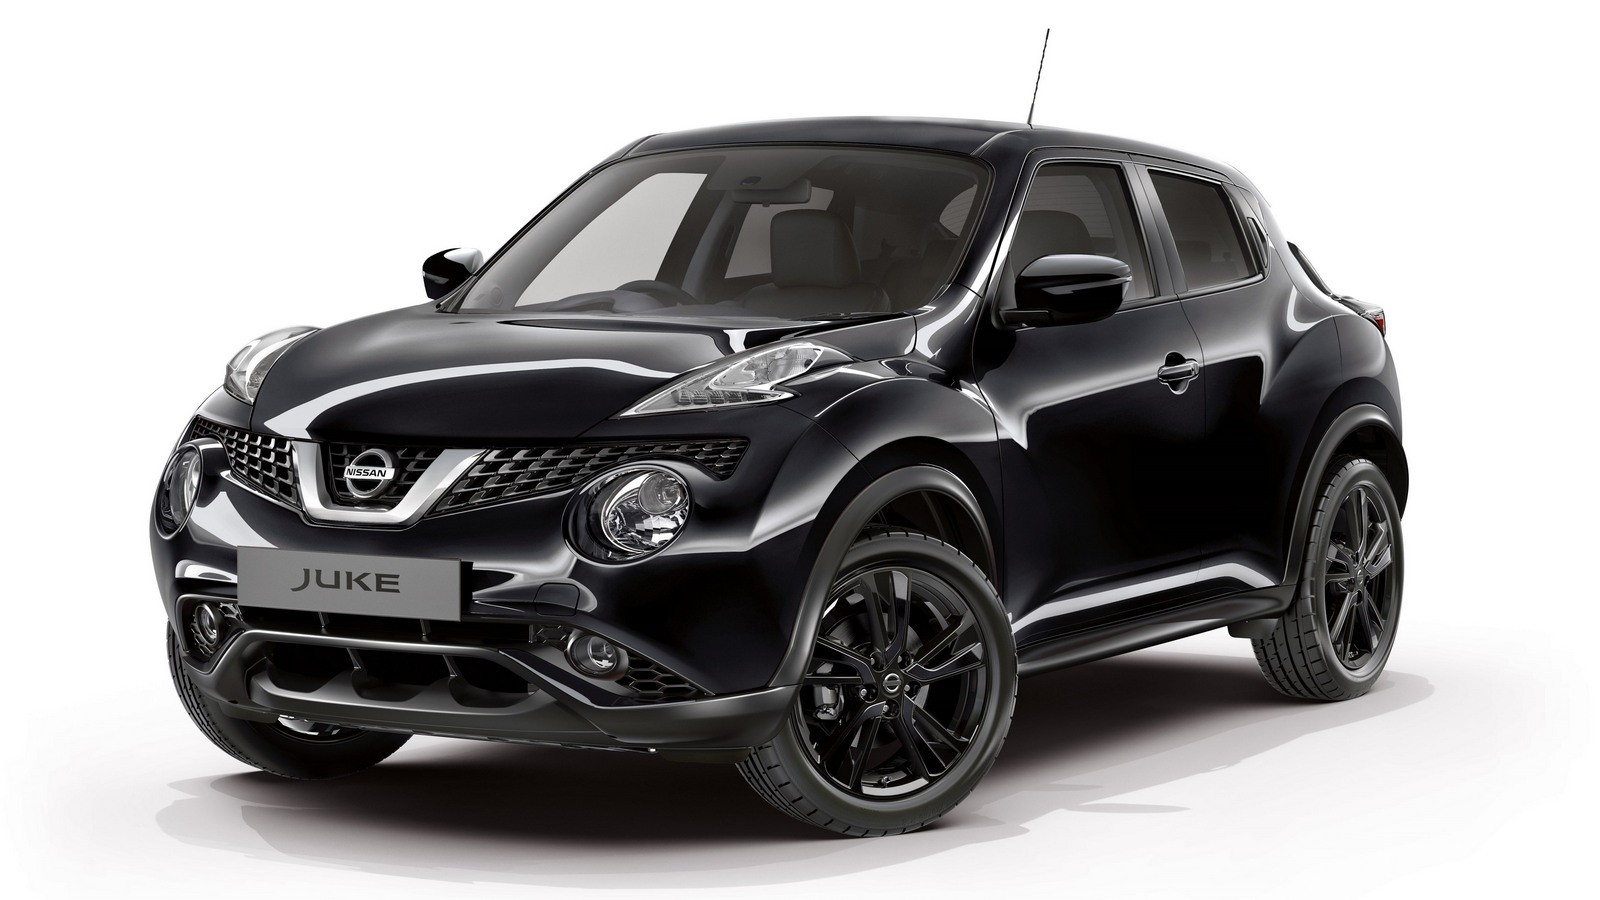 426186692_Sounds_superior_Nissan_launches_Juke_Premium_special_version_with_enhanced_cr